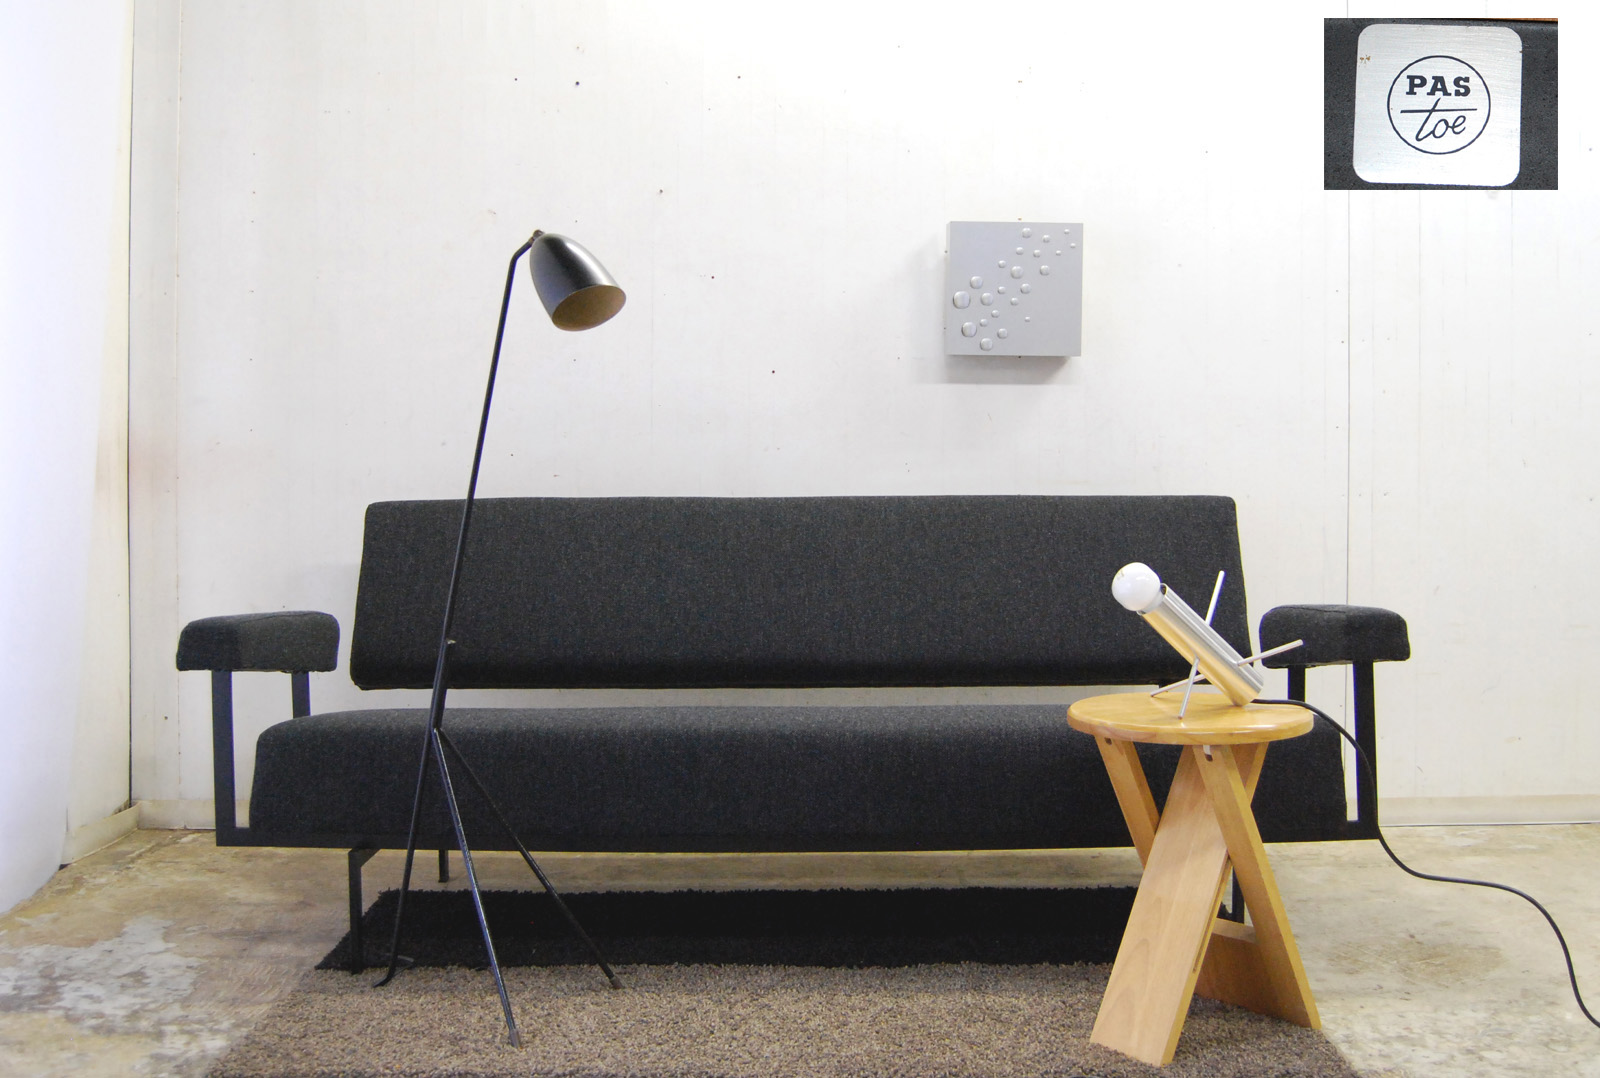 Cees Braakman Japanese Series Sofa MM07 UMS Pastoe ブラークマン 北欧